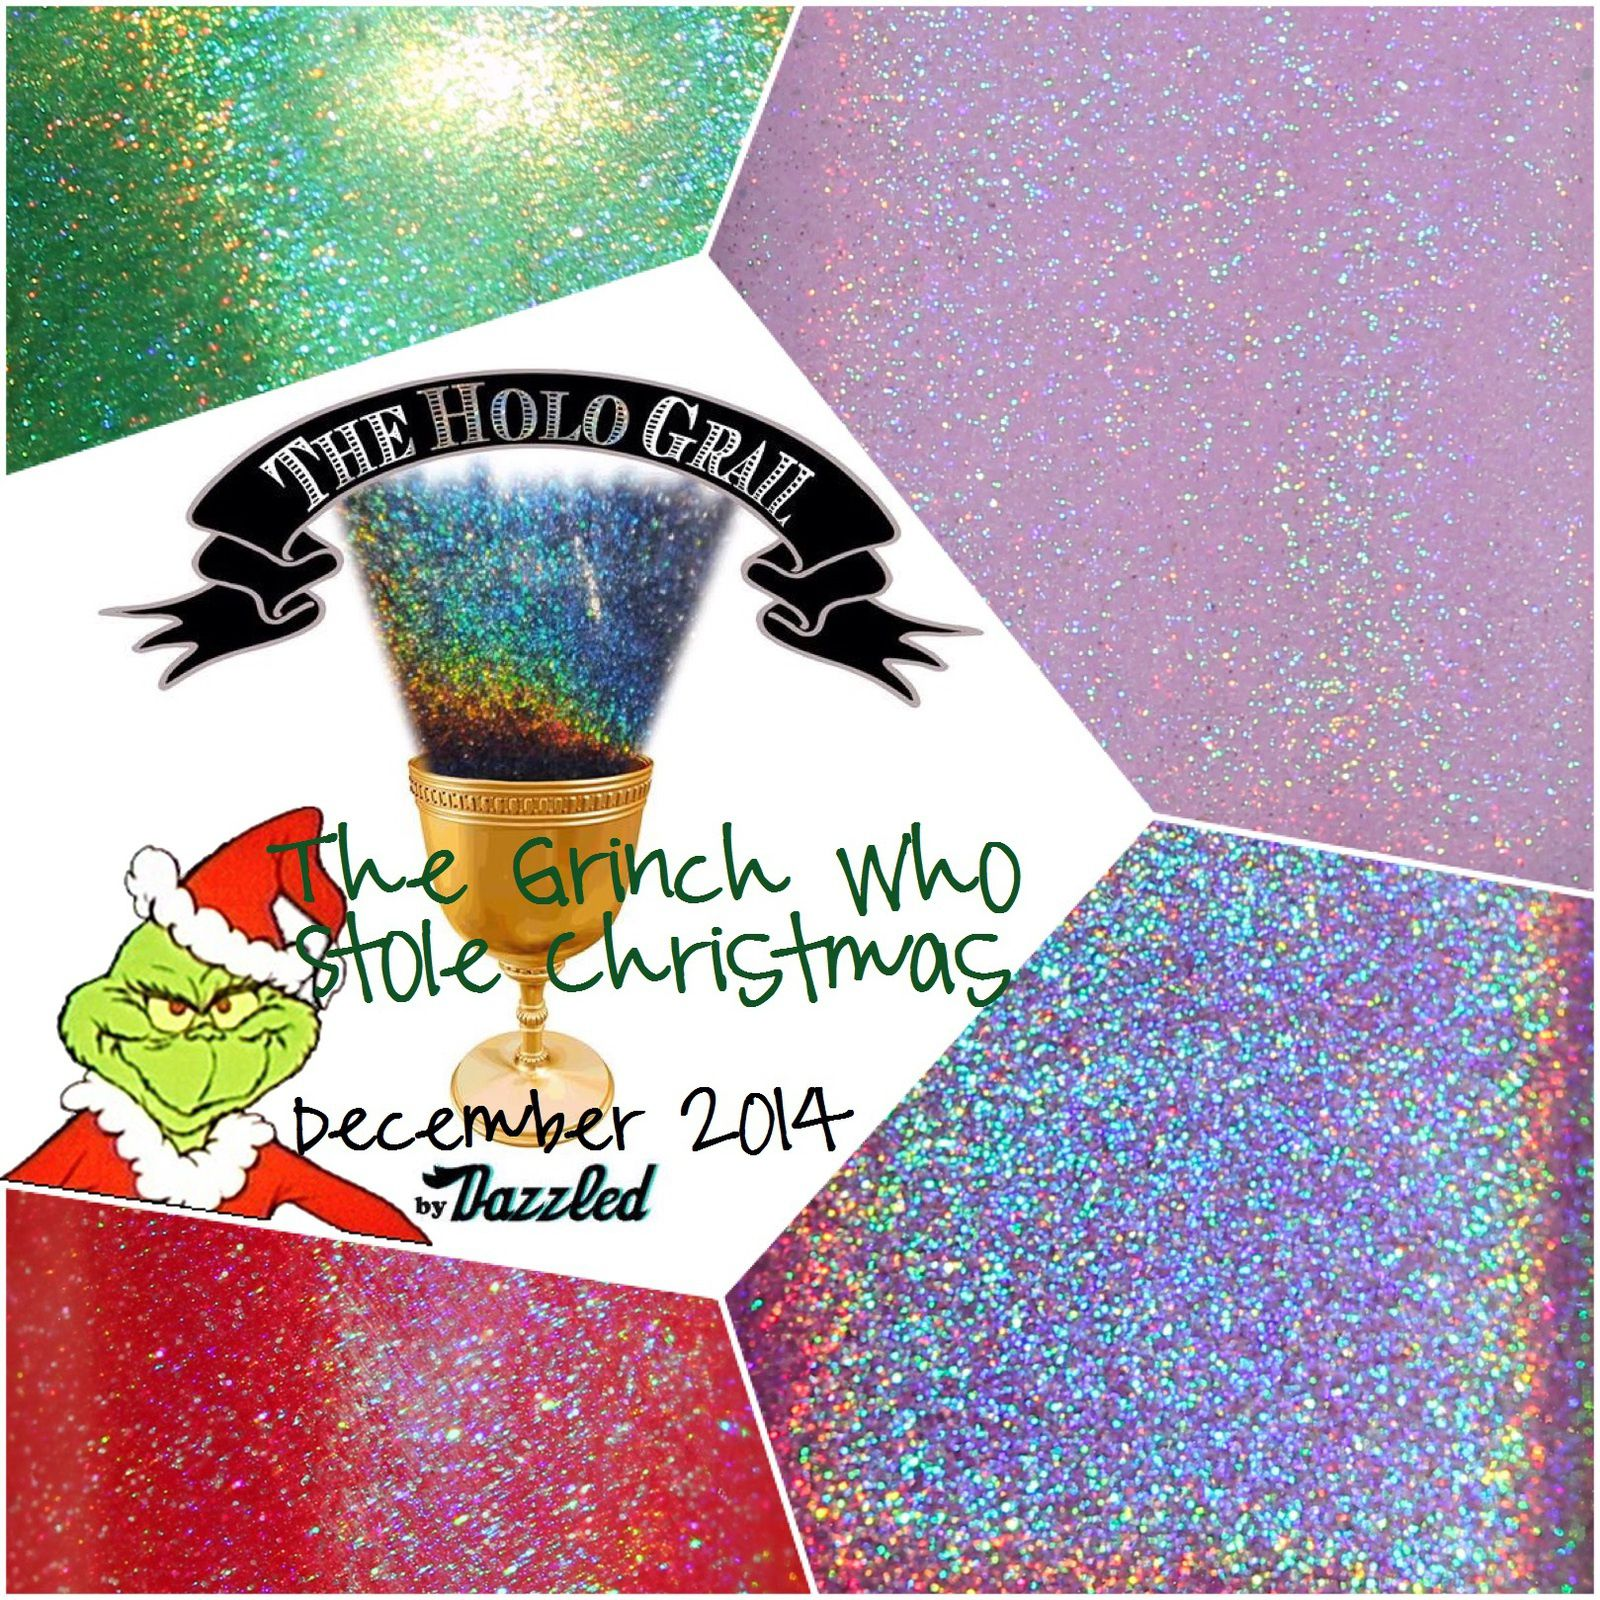 The Holo Grail Box by Dazzled - December 2014 - The Grinch Who Stole Christmas